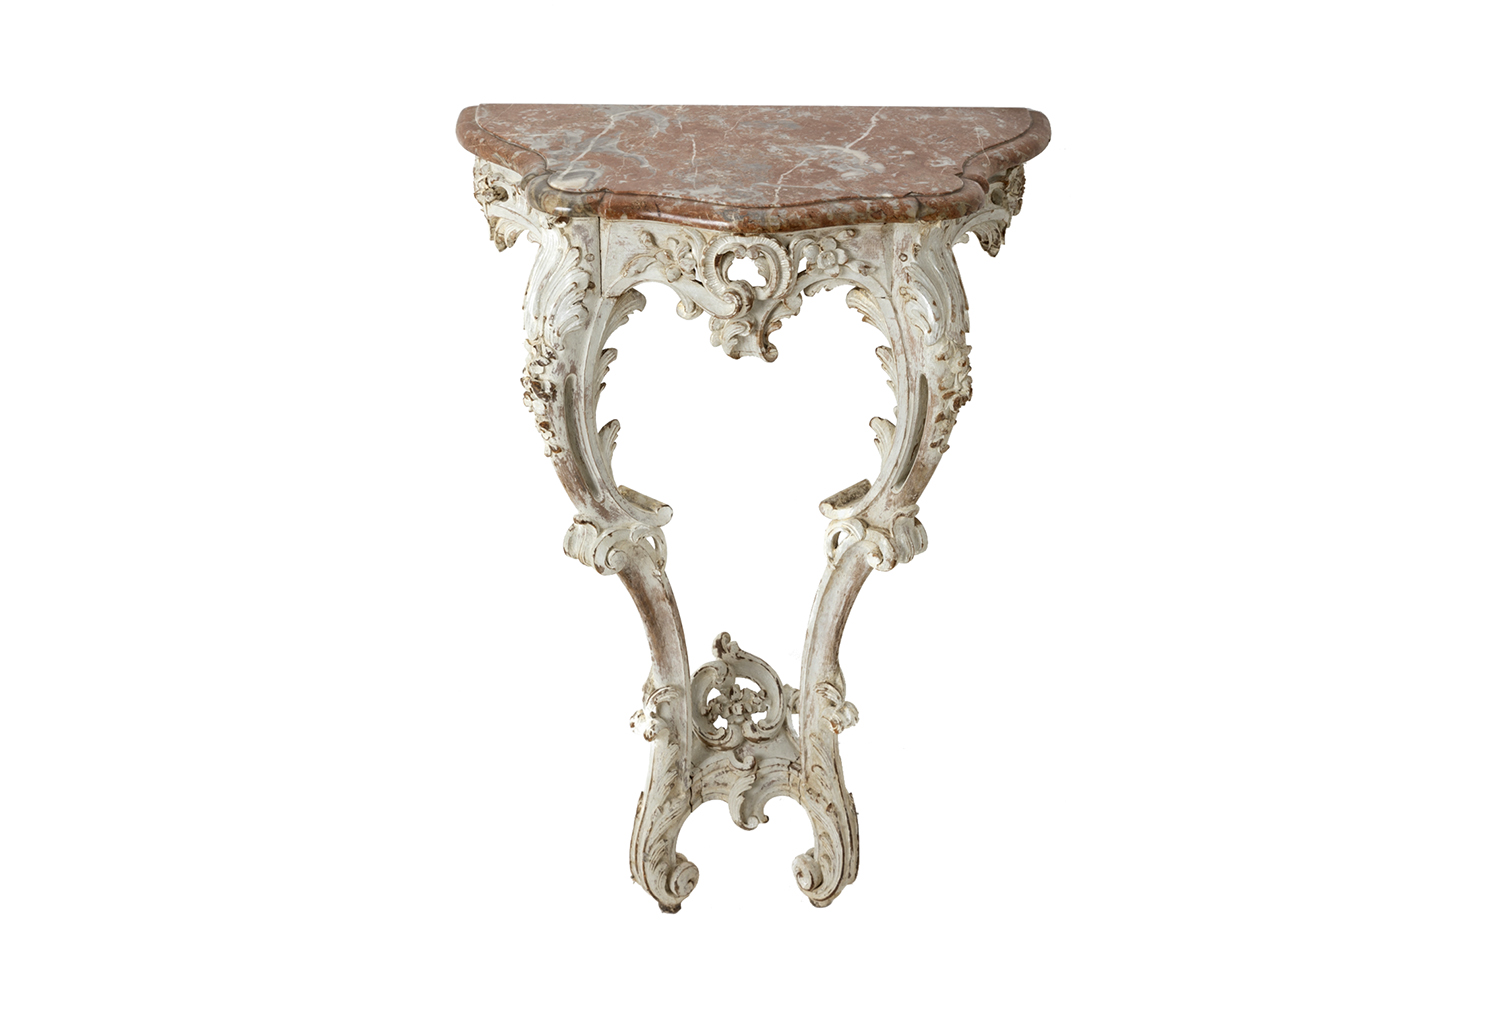 Little Lacquered Louis Xv Style Wall Bracket With Marble Top Circa 1880